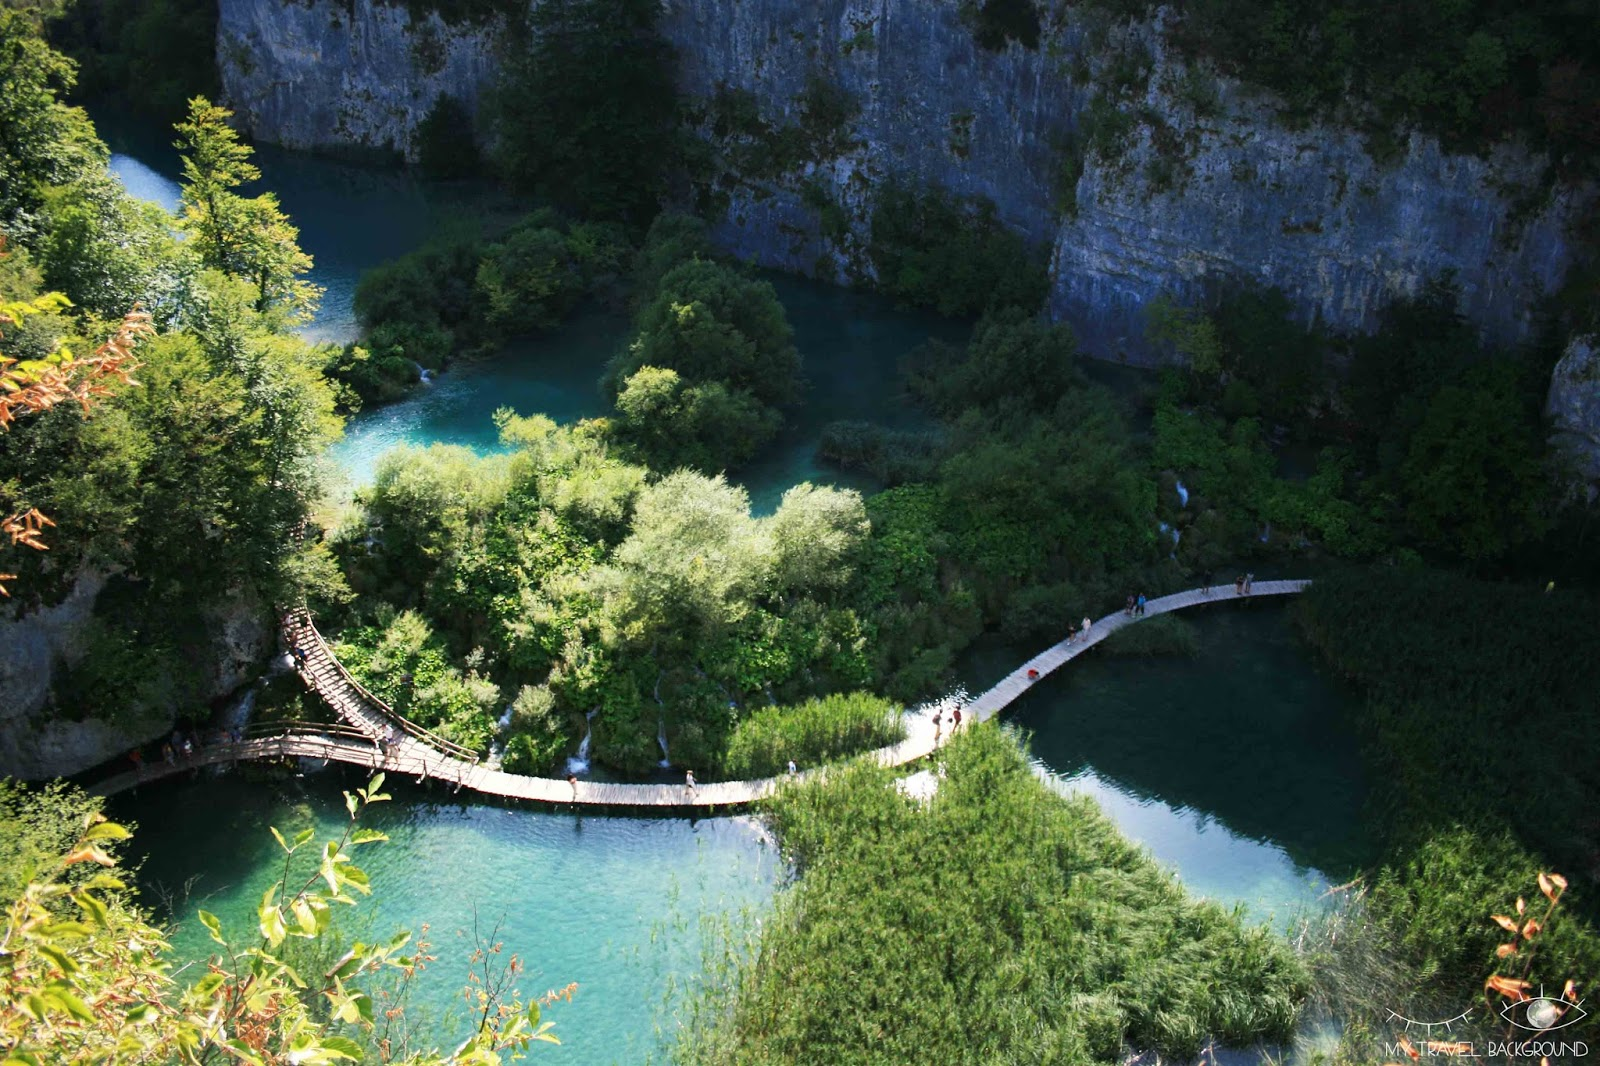 My Travel Background : cartes postales de Croatie - Les lacs de Plitvice